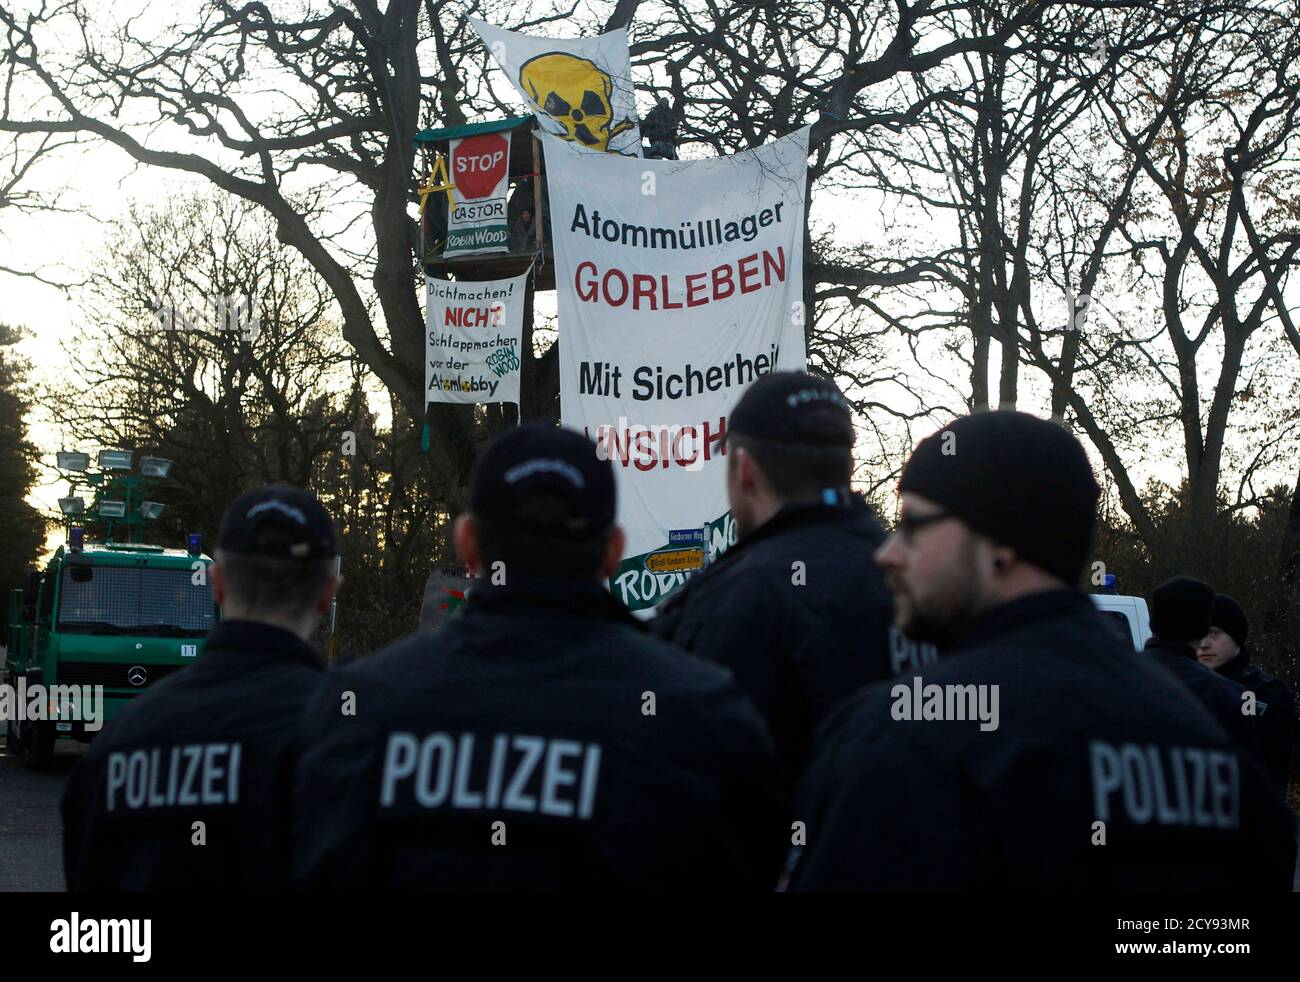 """An activist from the environmental organization Robin Wood observes the police from his tree house in Langendorf near Gorleben November 28, 2011. The controversial shipment of 11 Castor containers with spent German nuclear fuel reprocessed in France, will be loaded onto trucks in Dannenberg before its final transportation to the nearby intermediate storage facility in the northern Germany village of Gorleben. The banner reads: """"Radioactive waste storage Gorleben is not safe"""". REUTERS/Alex Domanski (GERMANY - Tags: ENVIRONMENT POLITICS CIVIL UNREST) Stock Photo"""